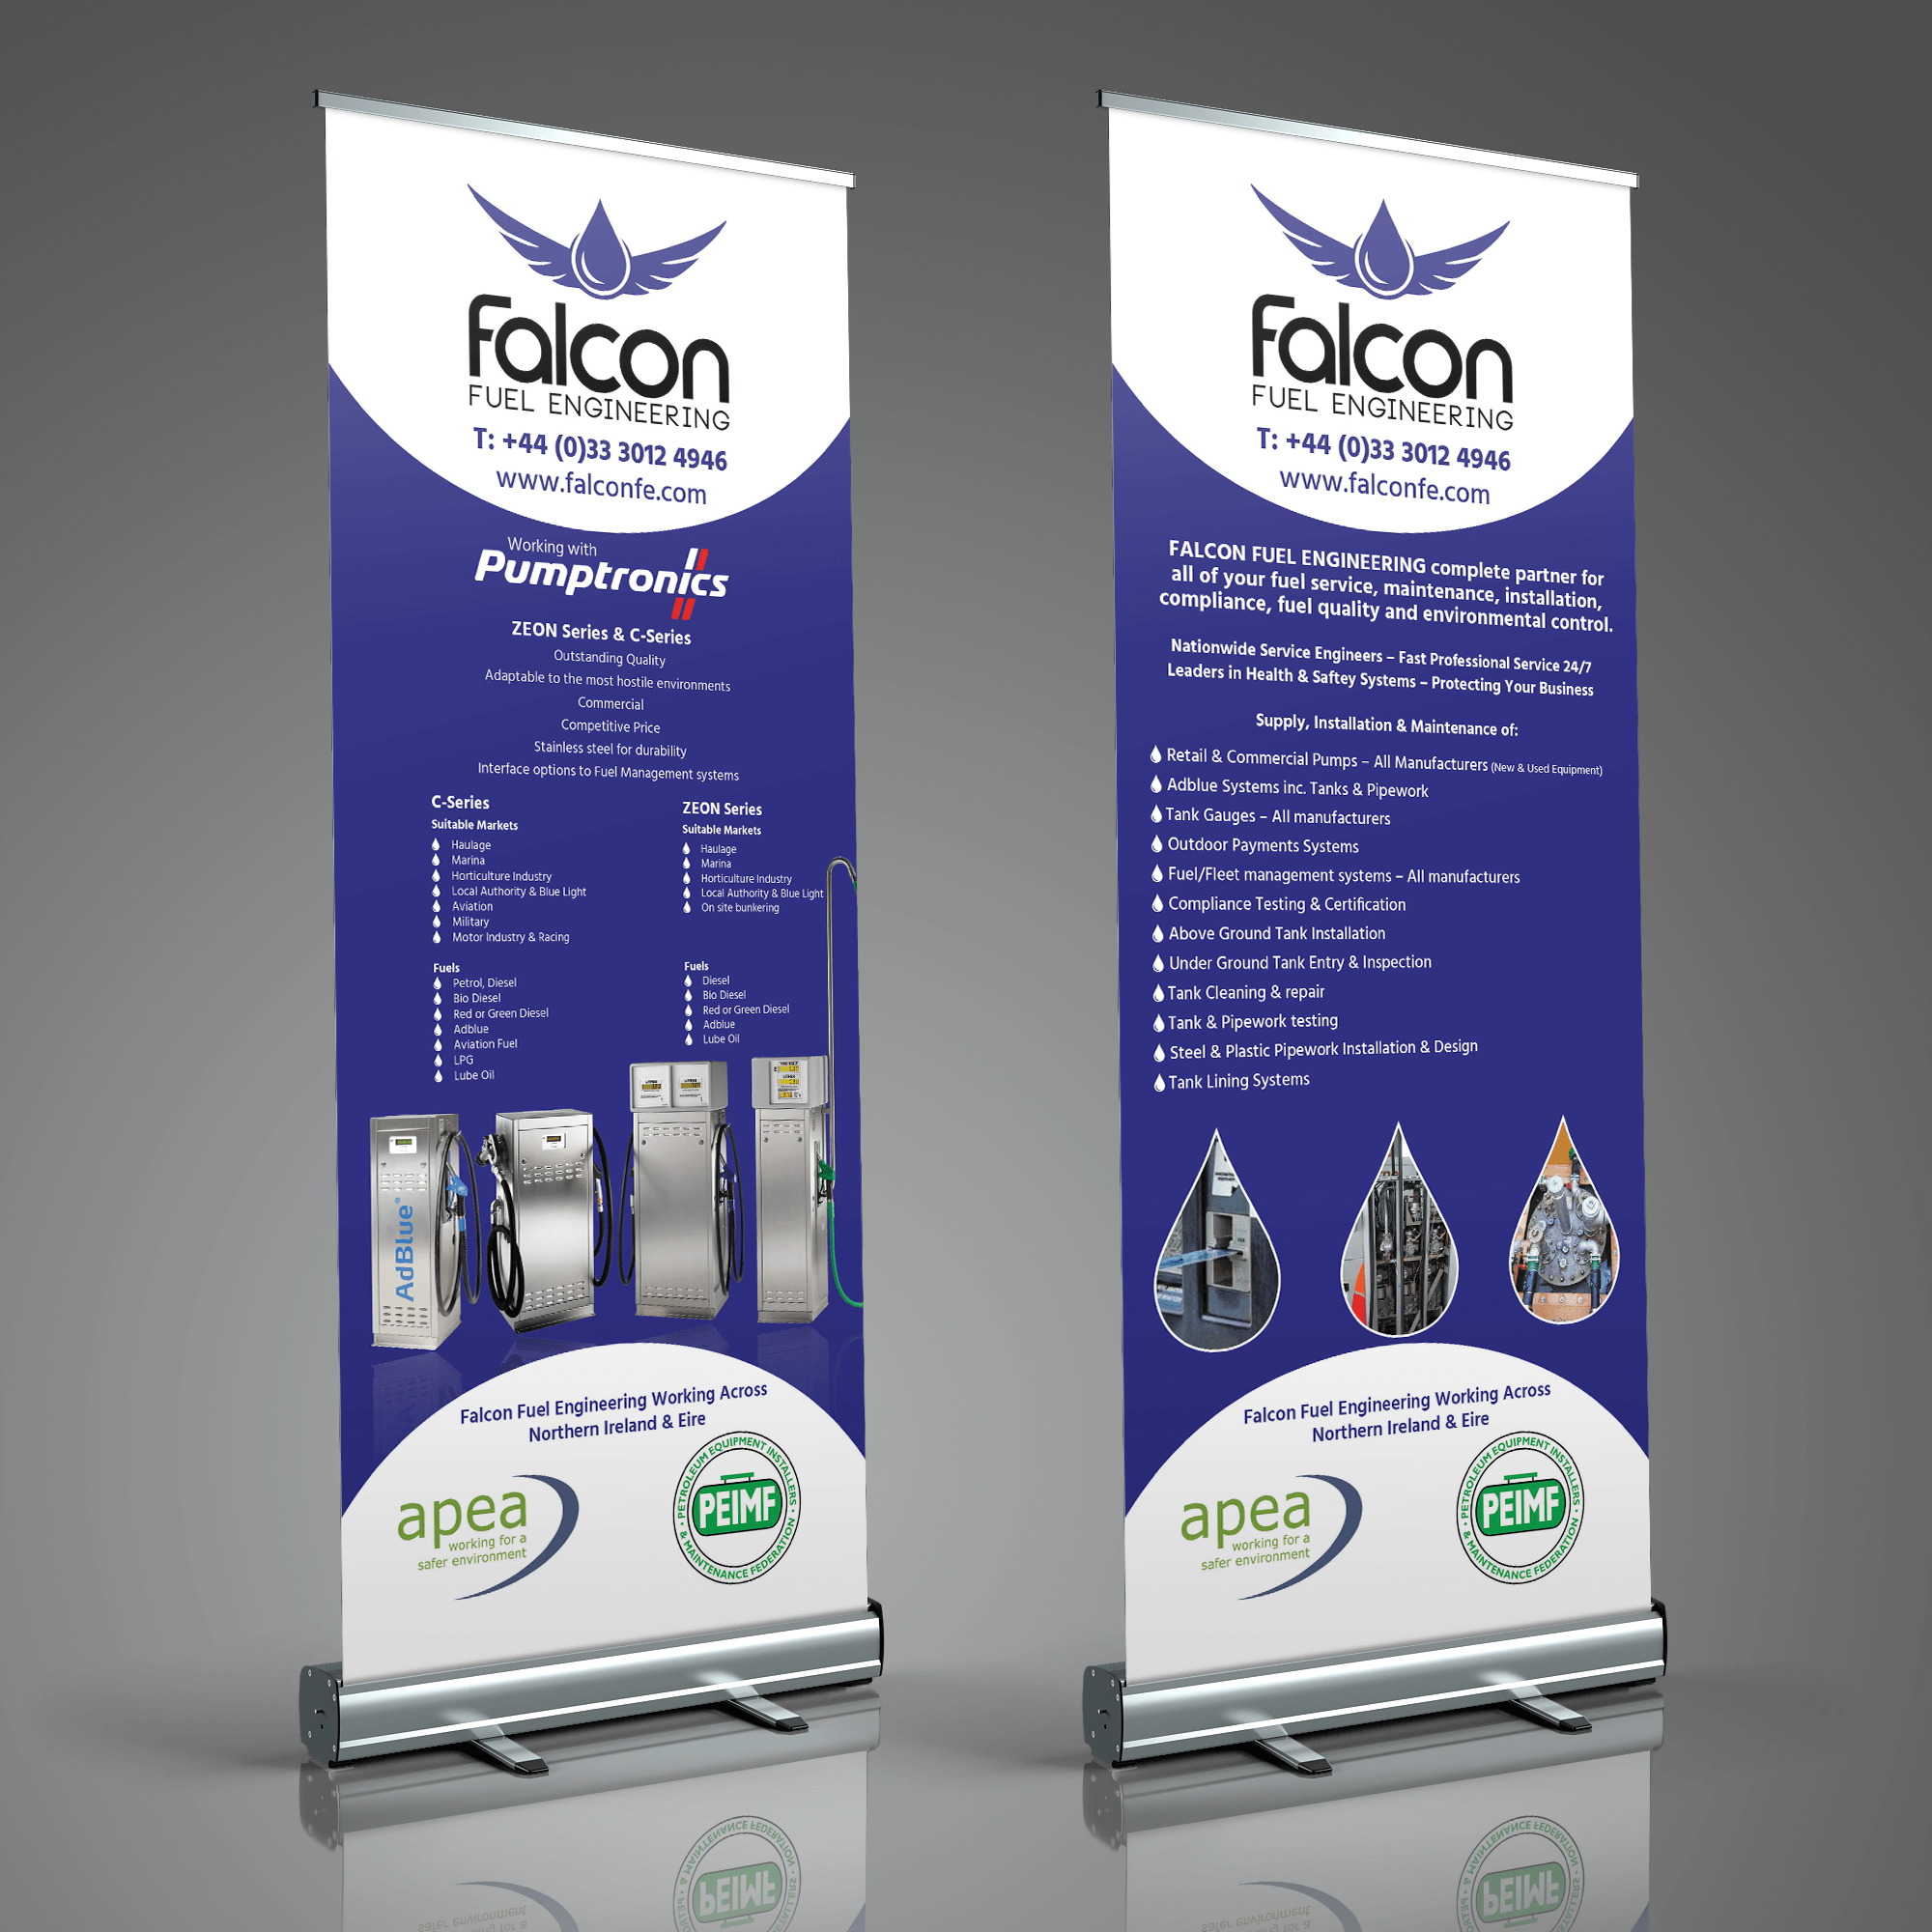 FFE Roll up banner design